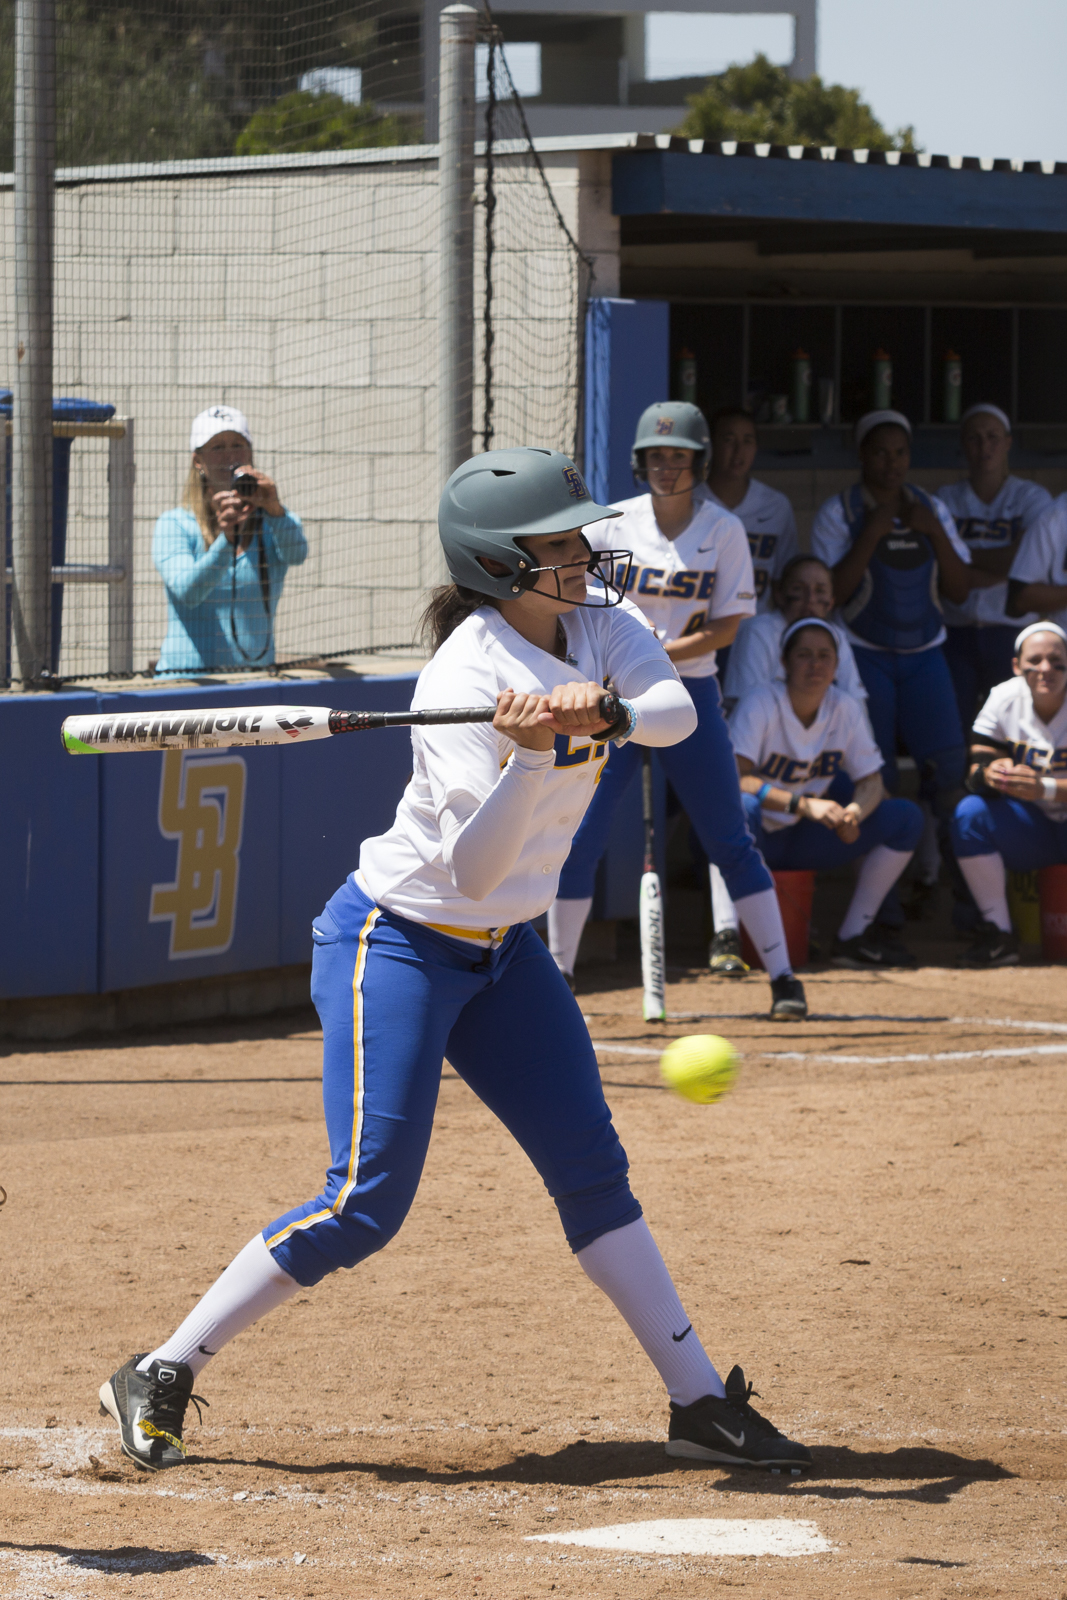 Kayla Sisson holds back from swinging at a ball. Dustin Harris/Daily Nexus